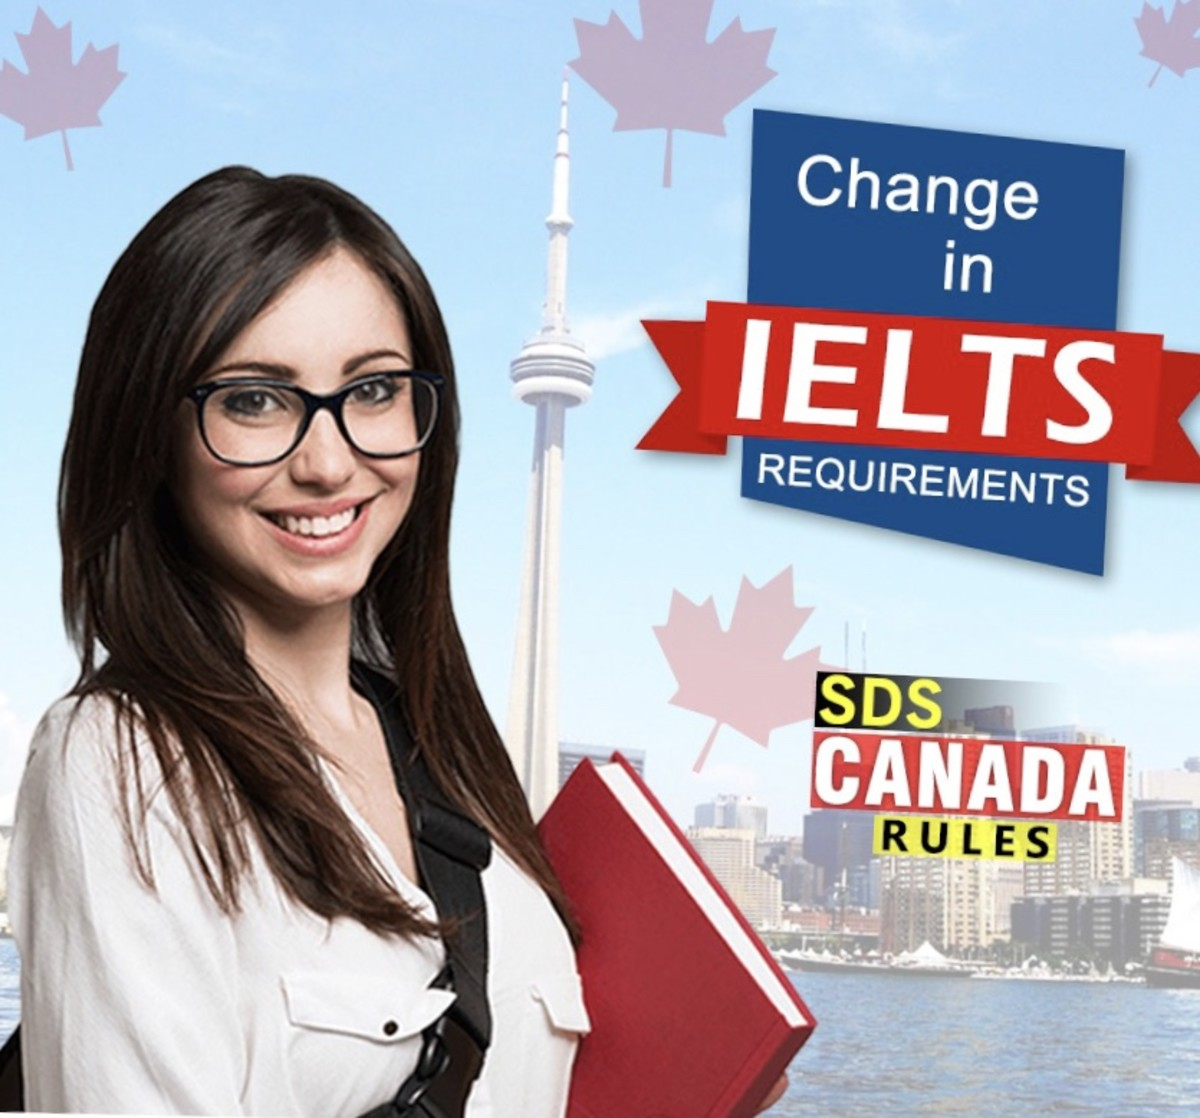 IELTS requirement is changed under SDS